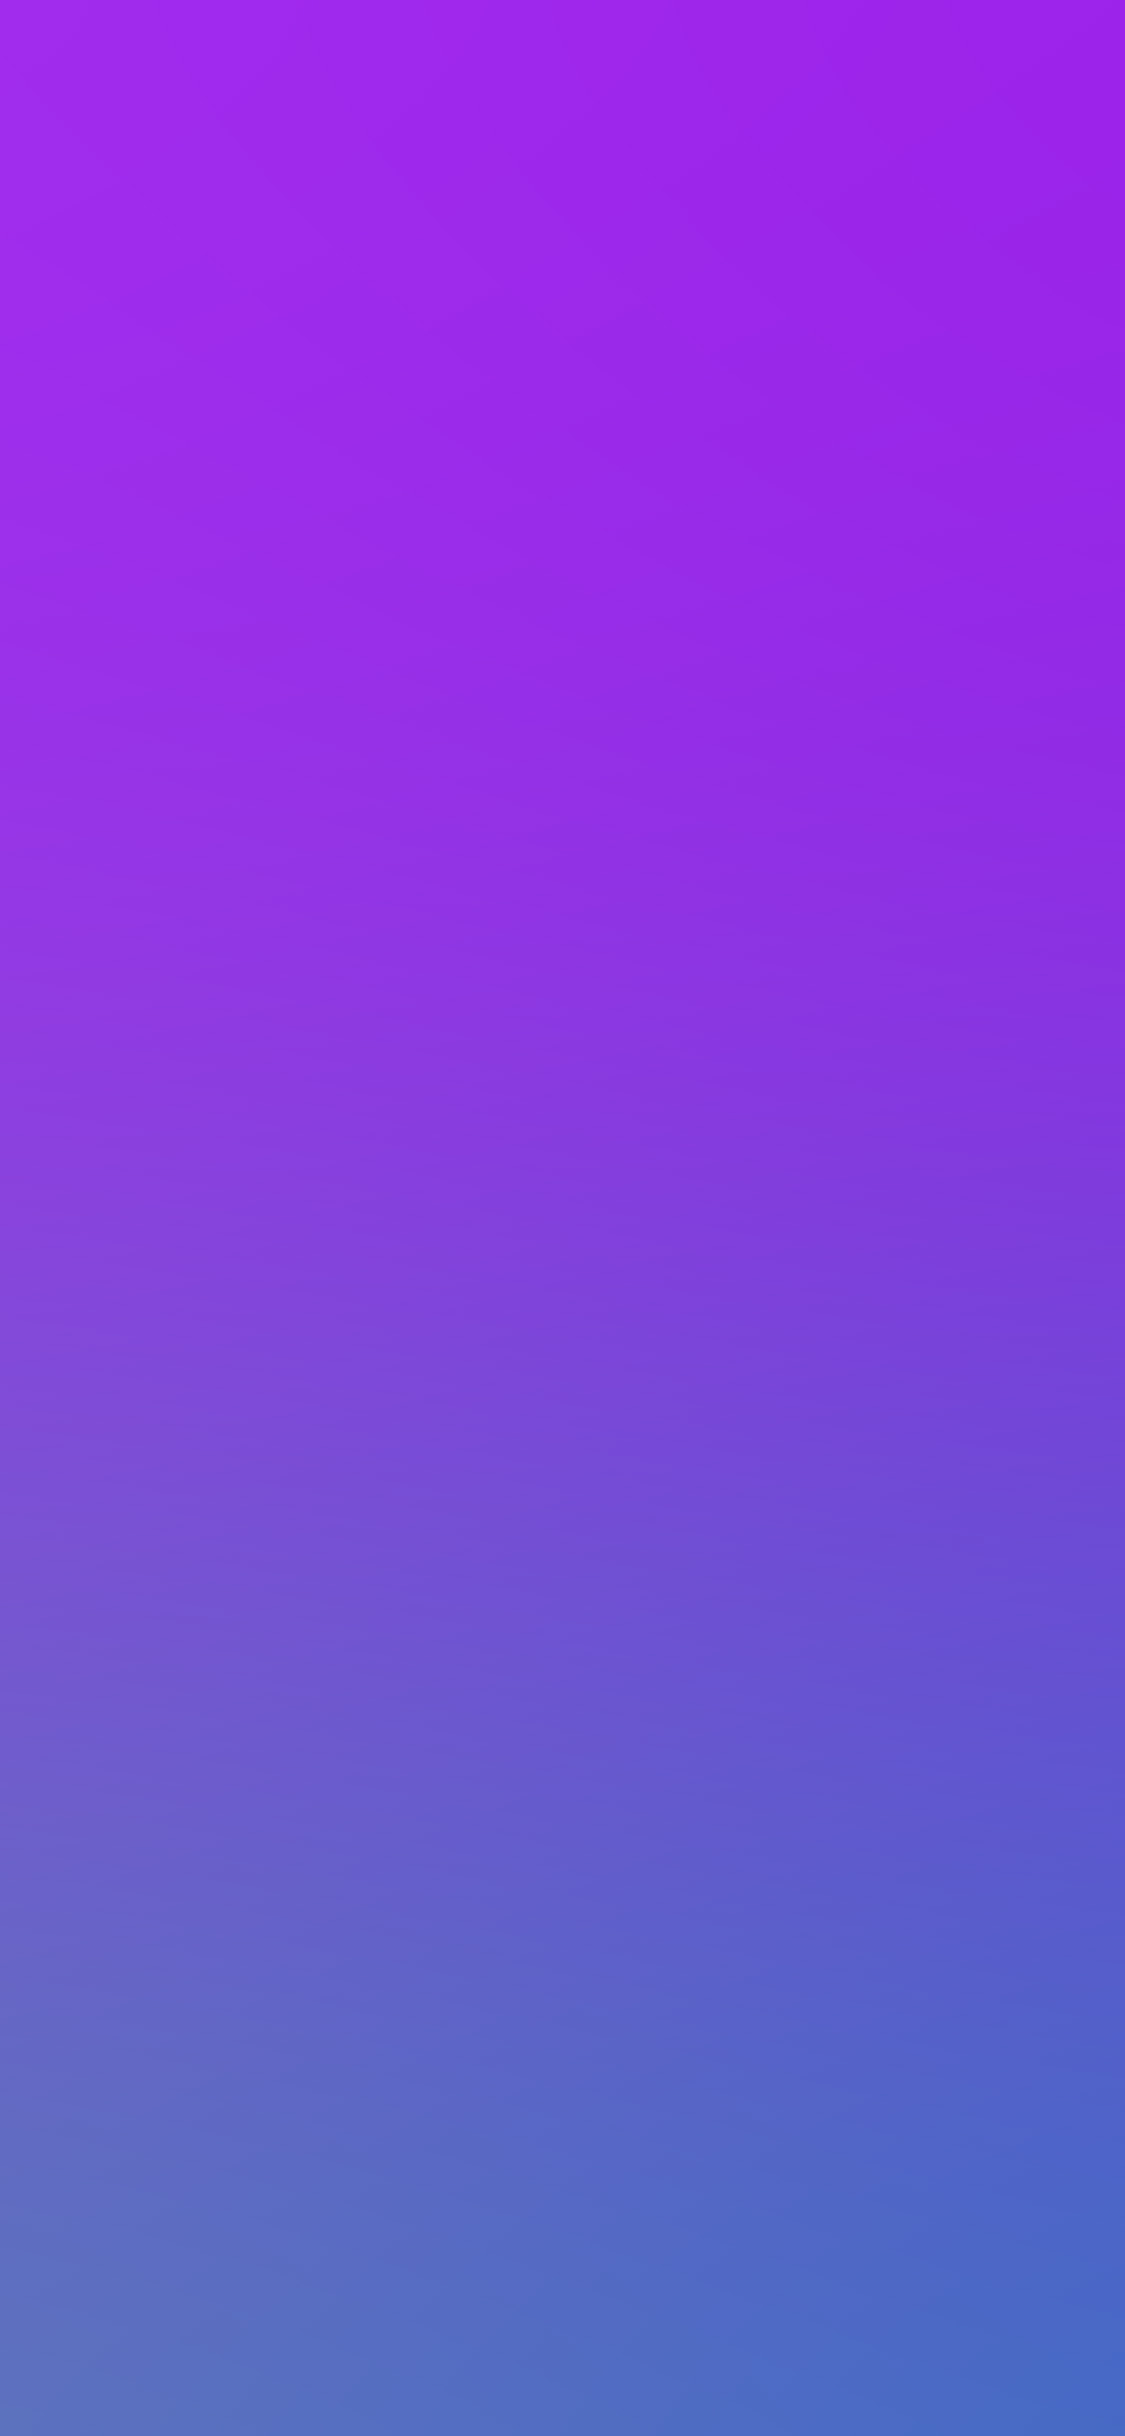 iPhonexpapers.com-Apple-iPhone-wallpaper-so08-purple-sexy-blur-gradation